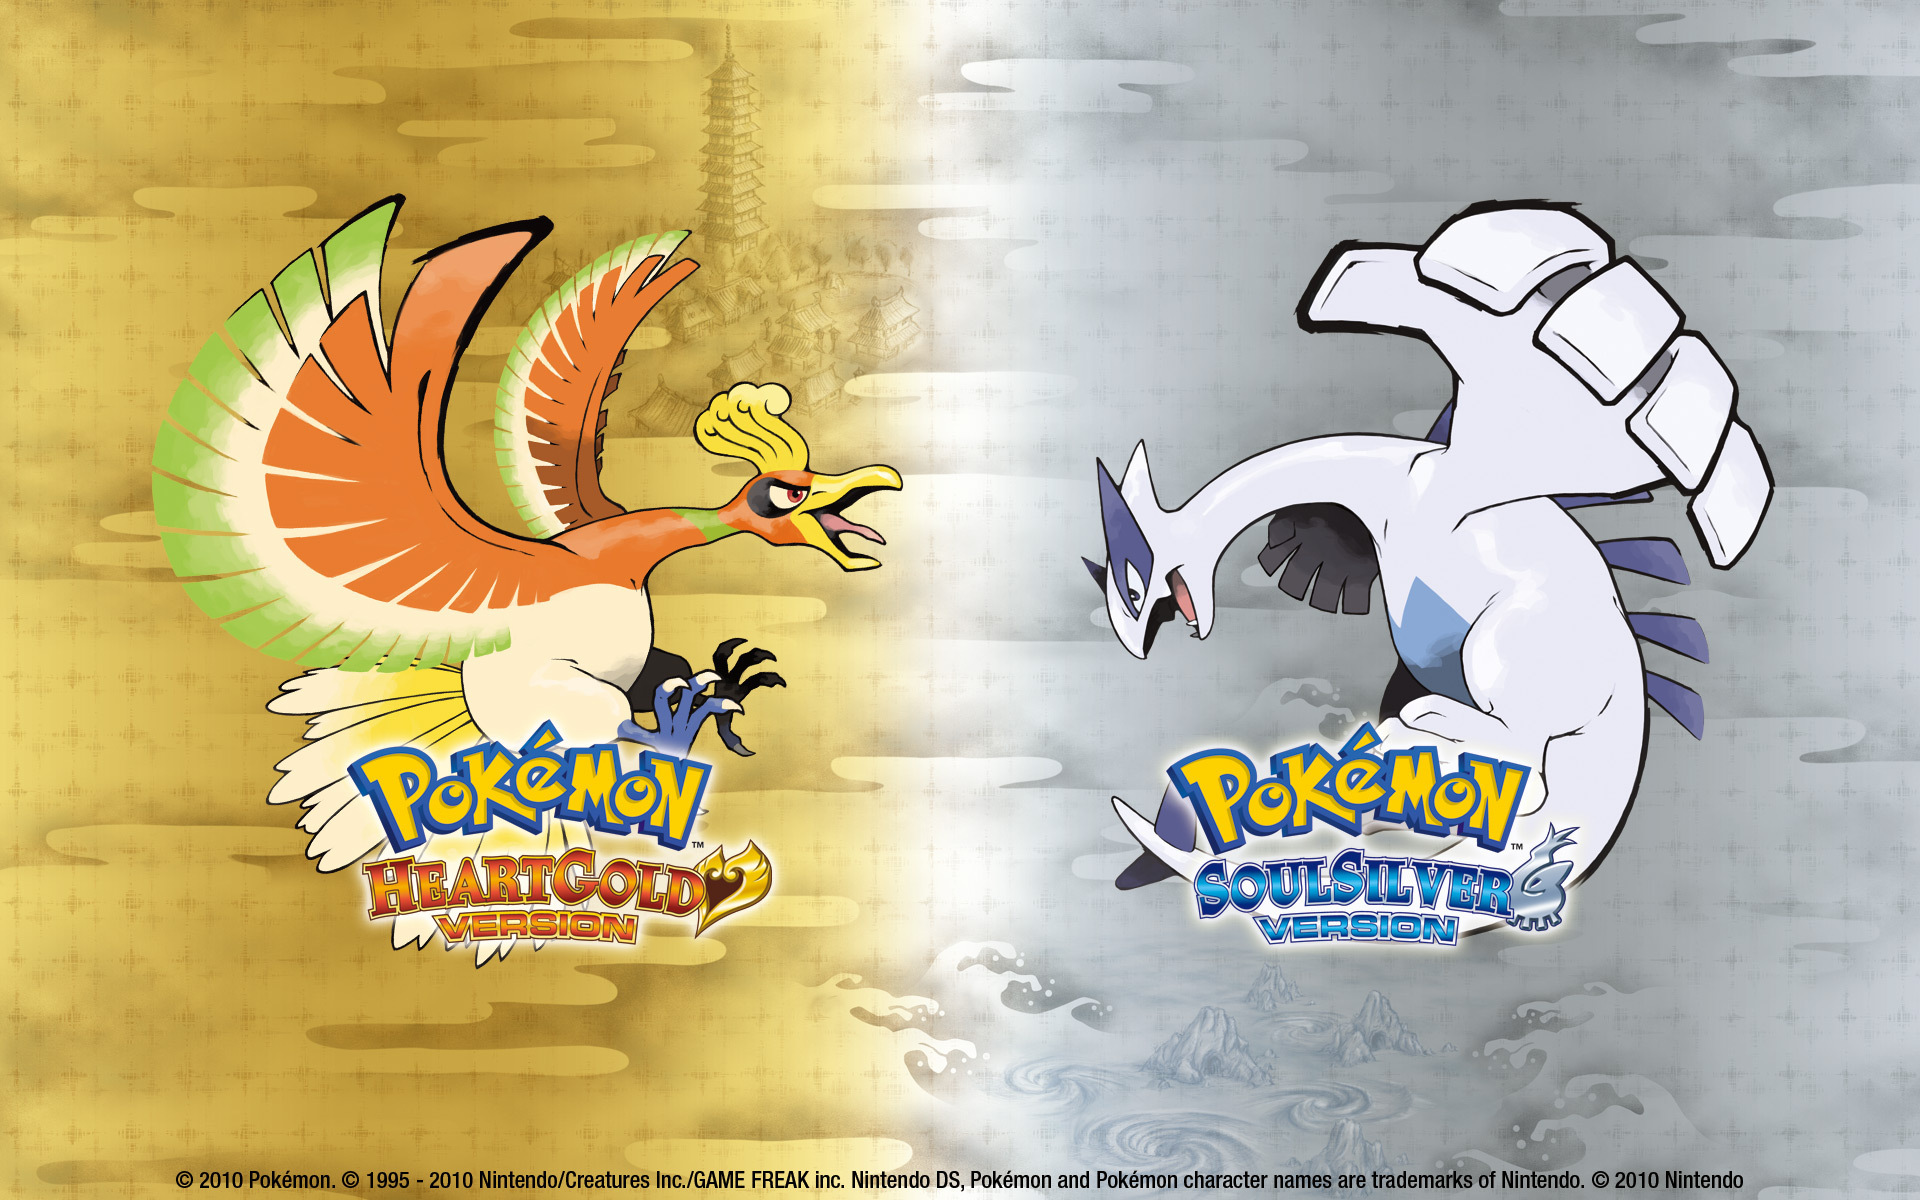 PR: Pokémon HeartGold & Pokémon SoulSilver: Super Music Collection launches on iTunes today